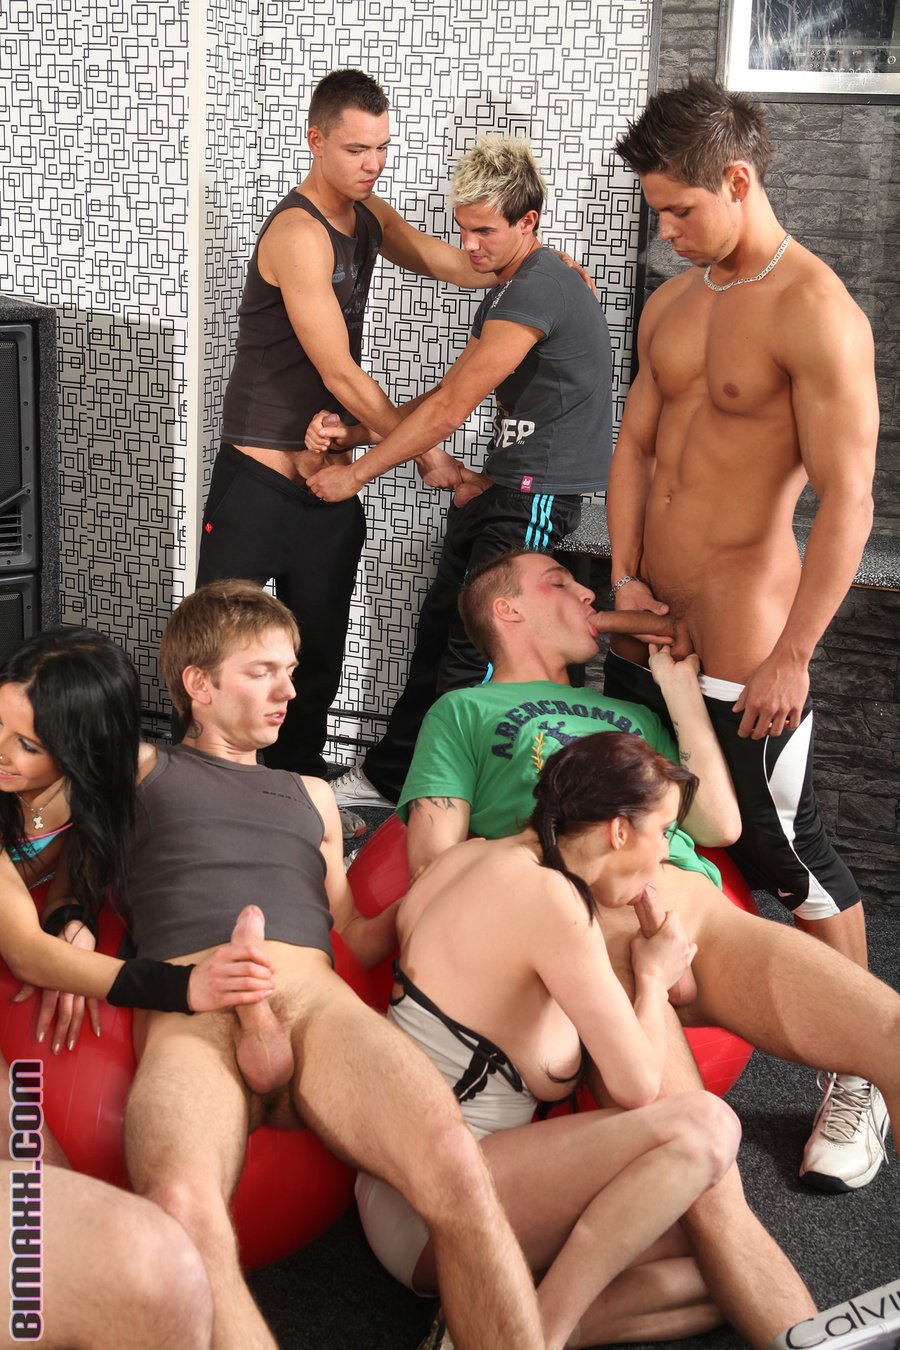 make-bisexual-group-sex-pary-nud-real